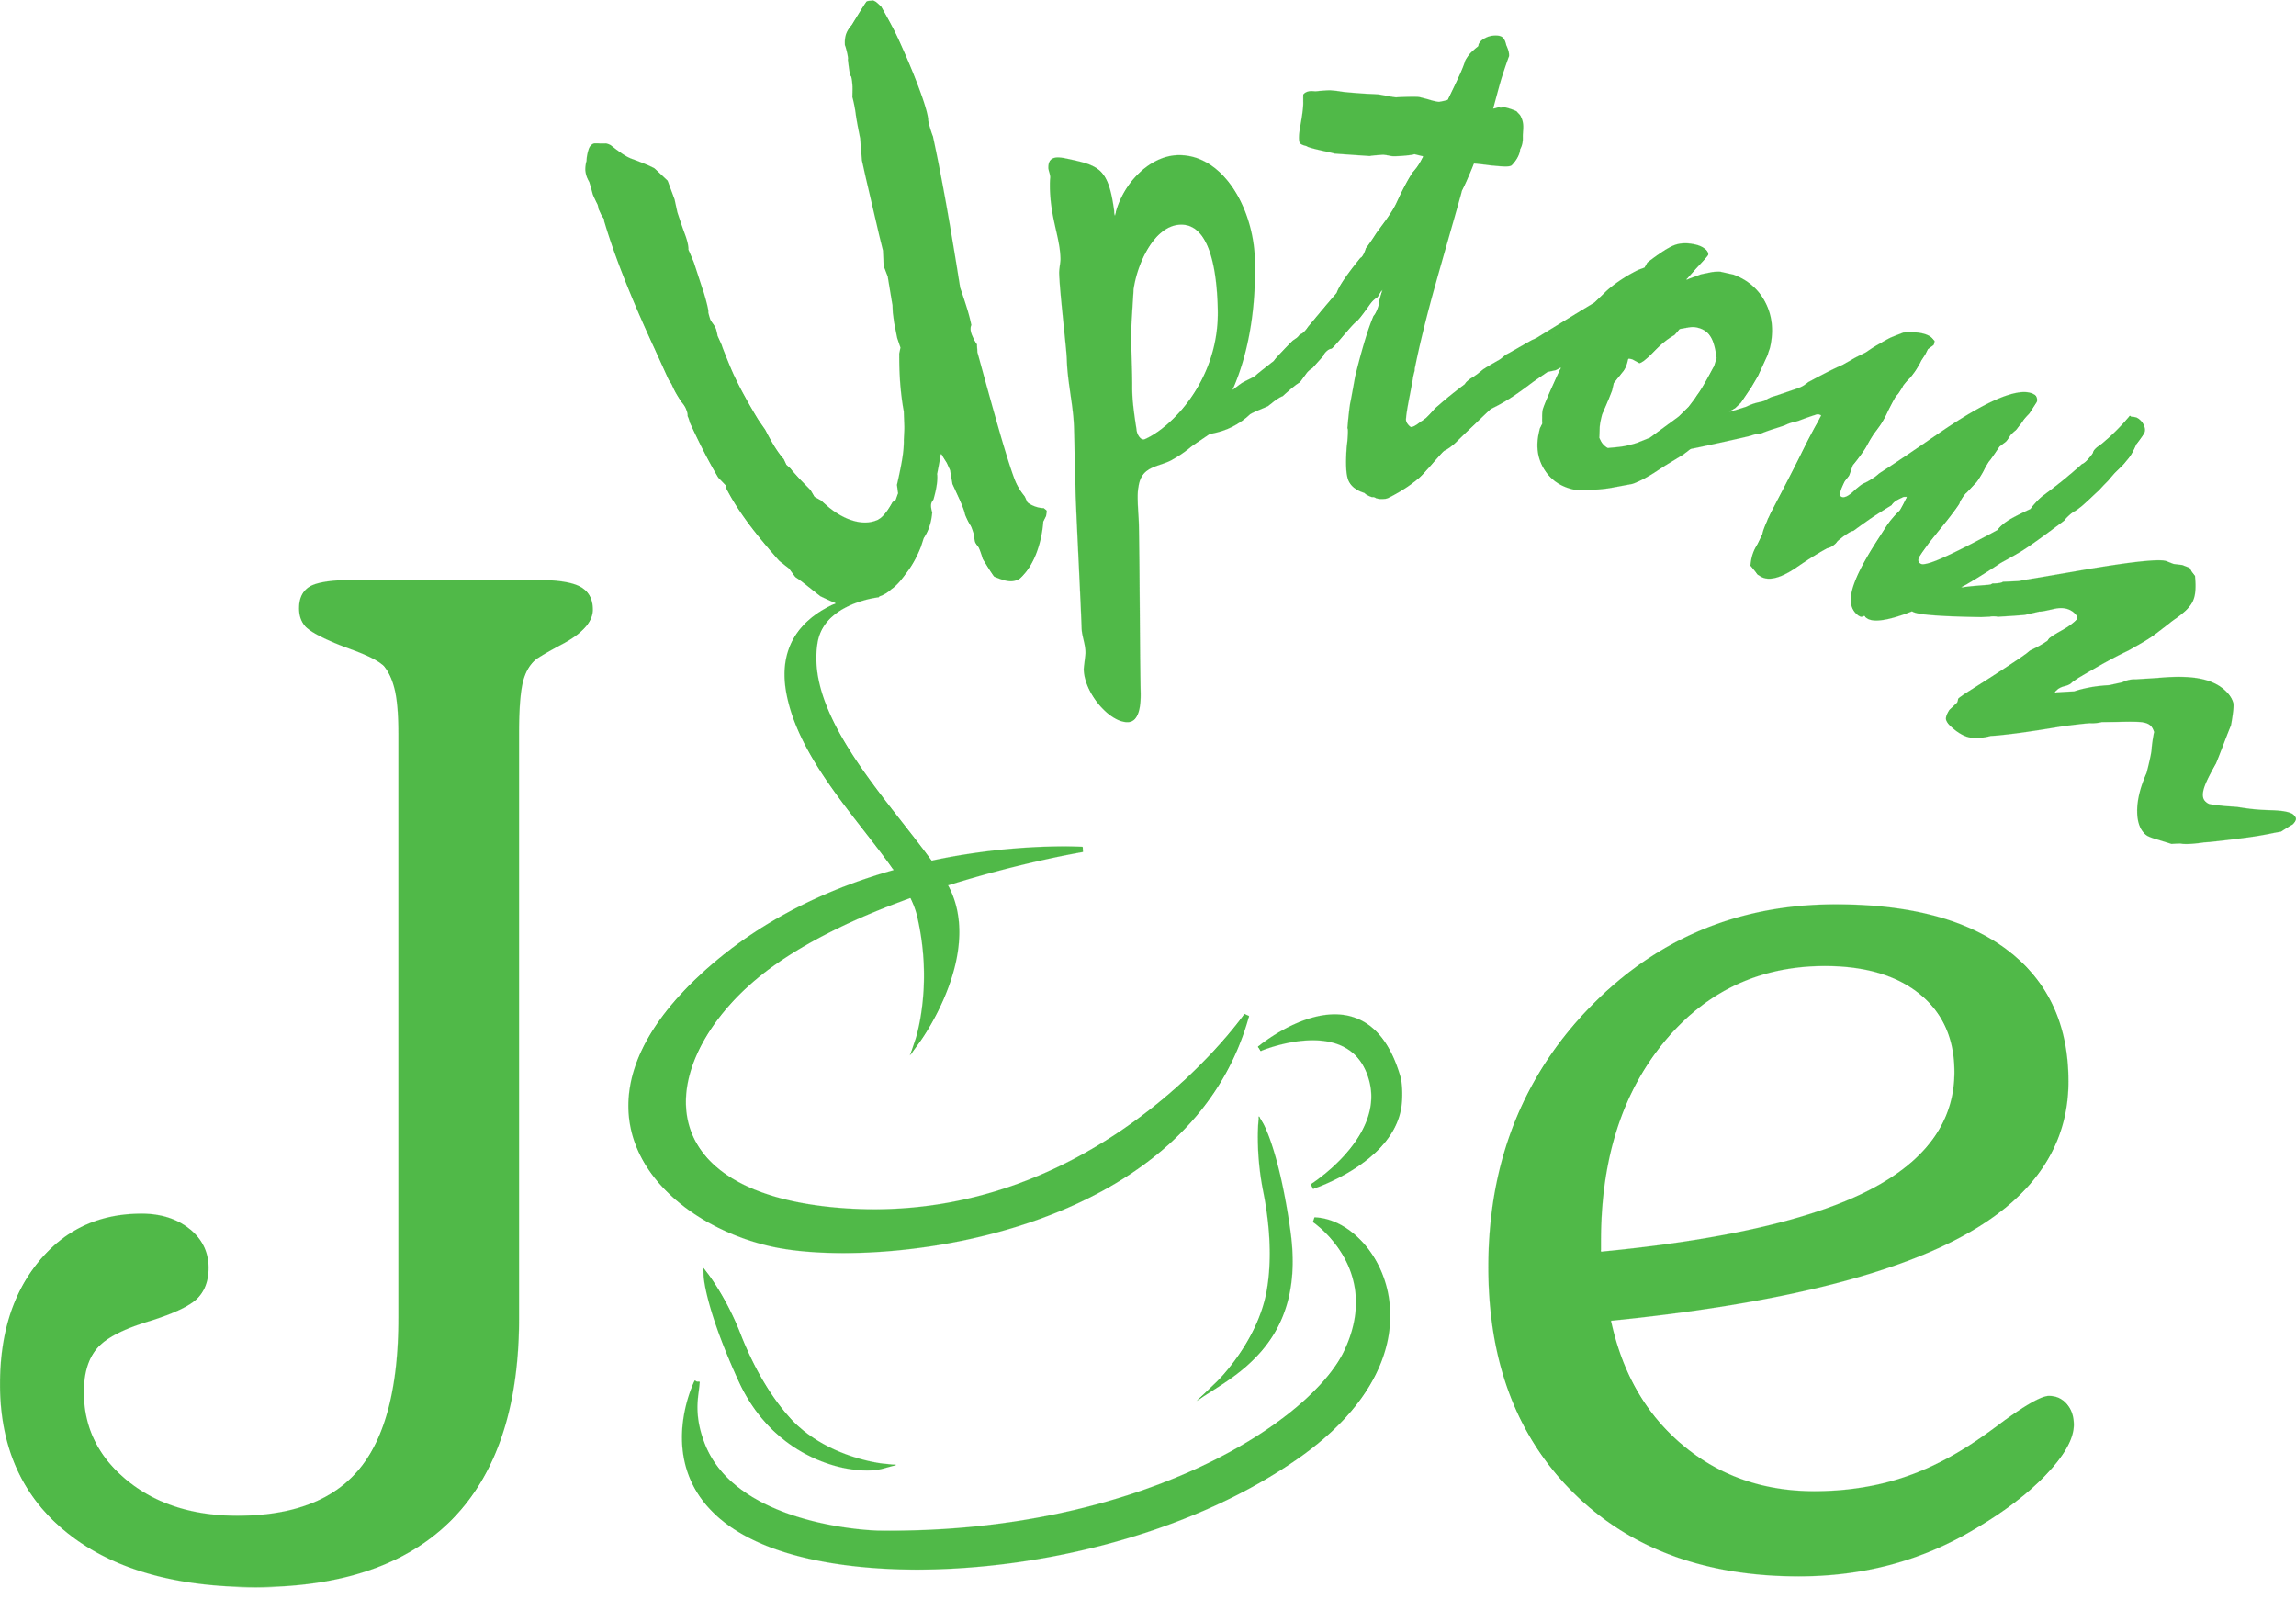 Uptown Joe - Coffee Shop in Louisville Ohio serving breakfast and lunch